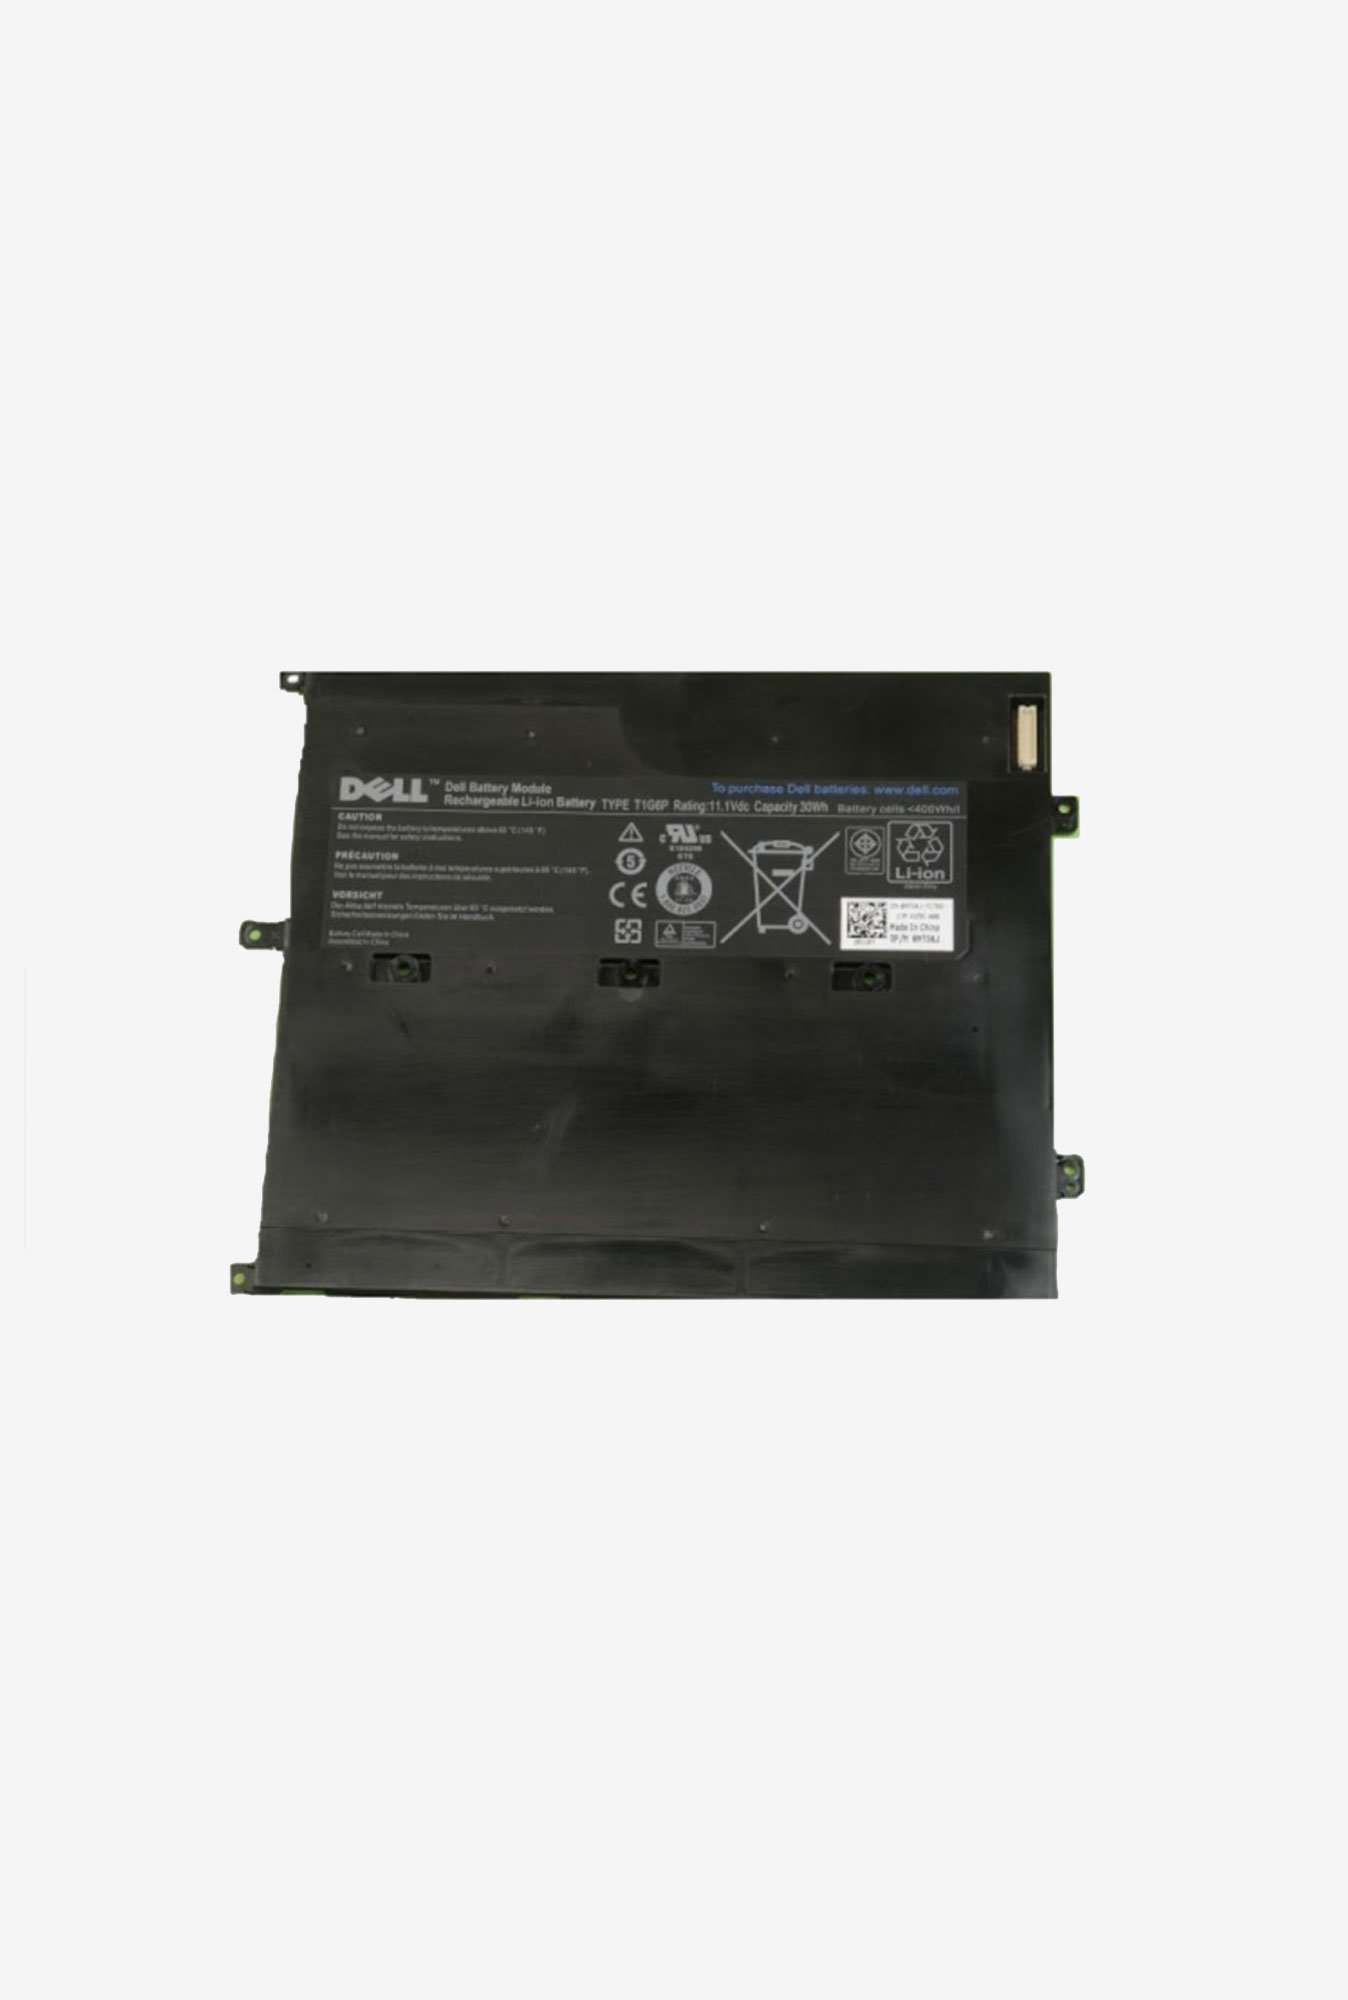 Dell NTG4J 2700 mAh Laptop Battery Black